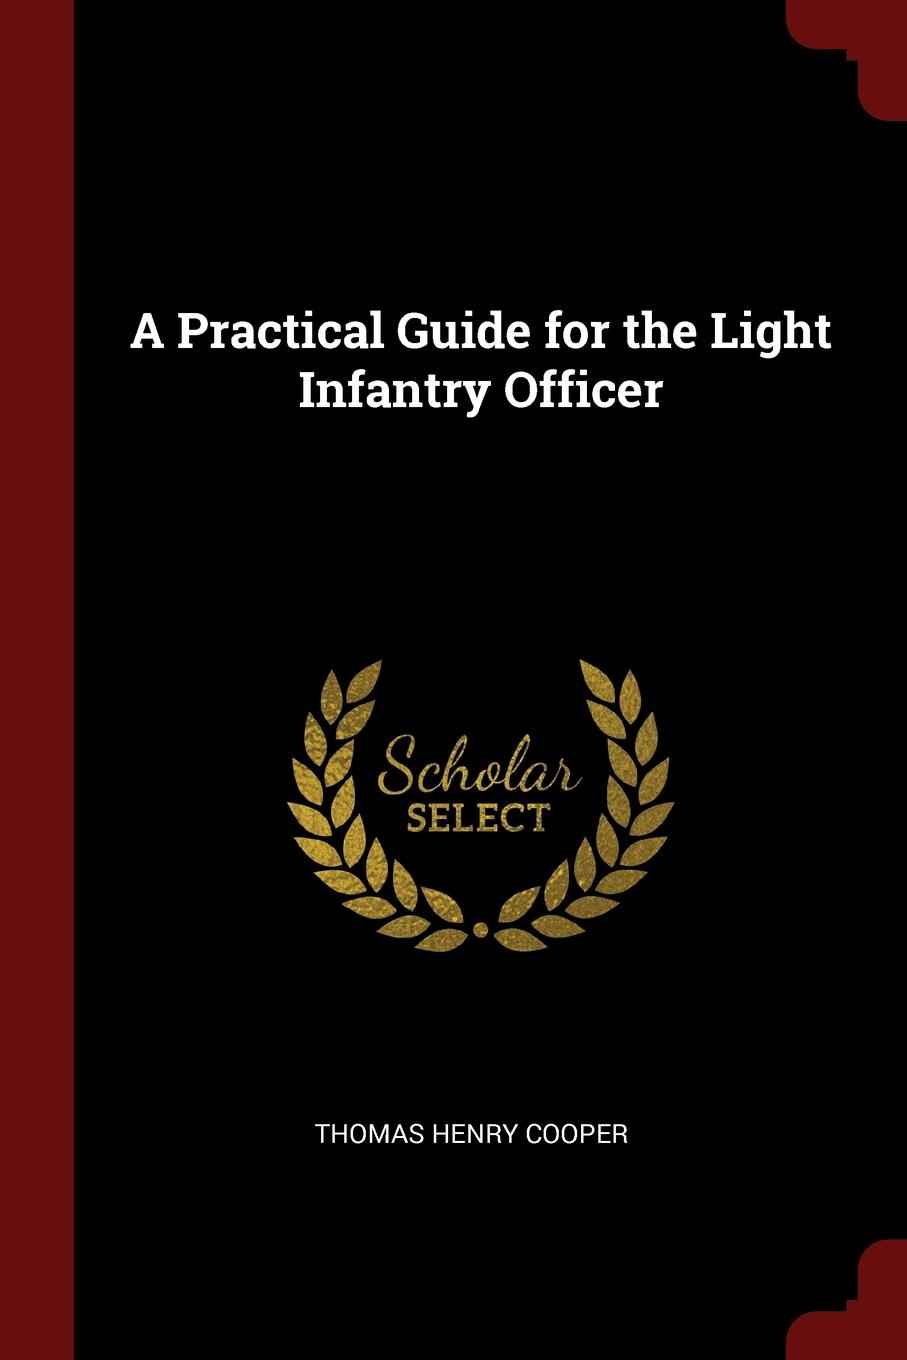 Thomas Henry Cooper A Practical Guide for the Light Infantry Officer